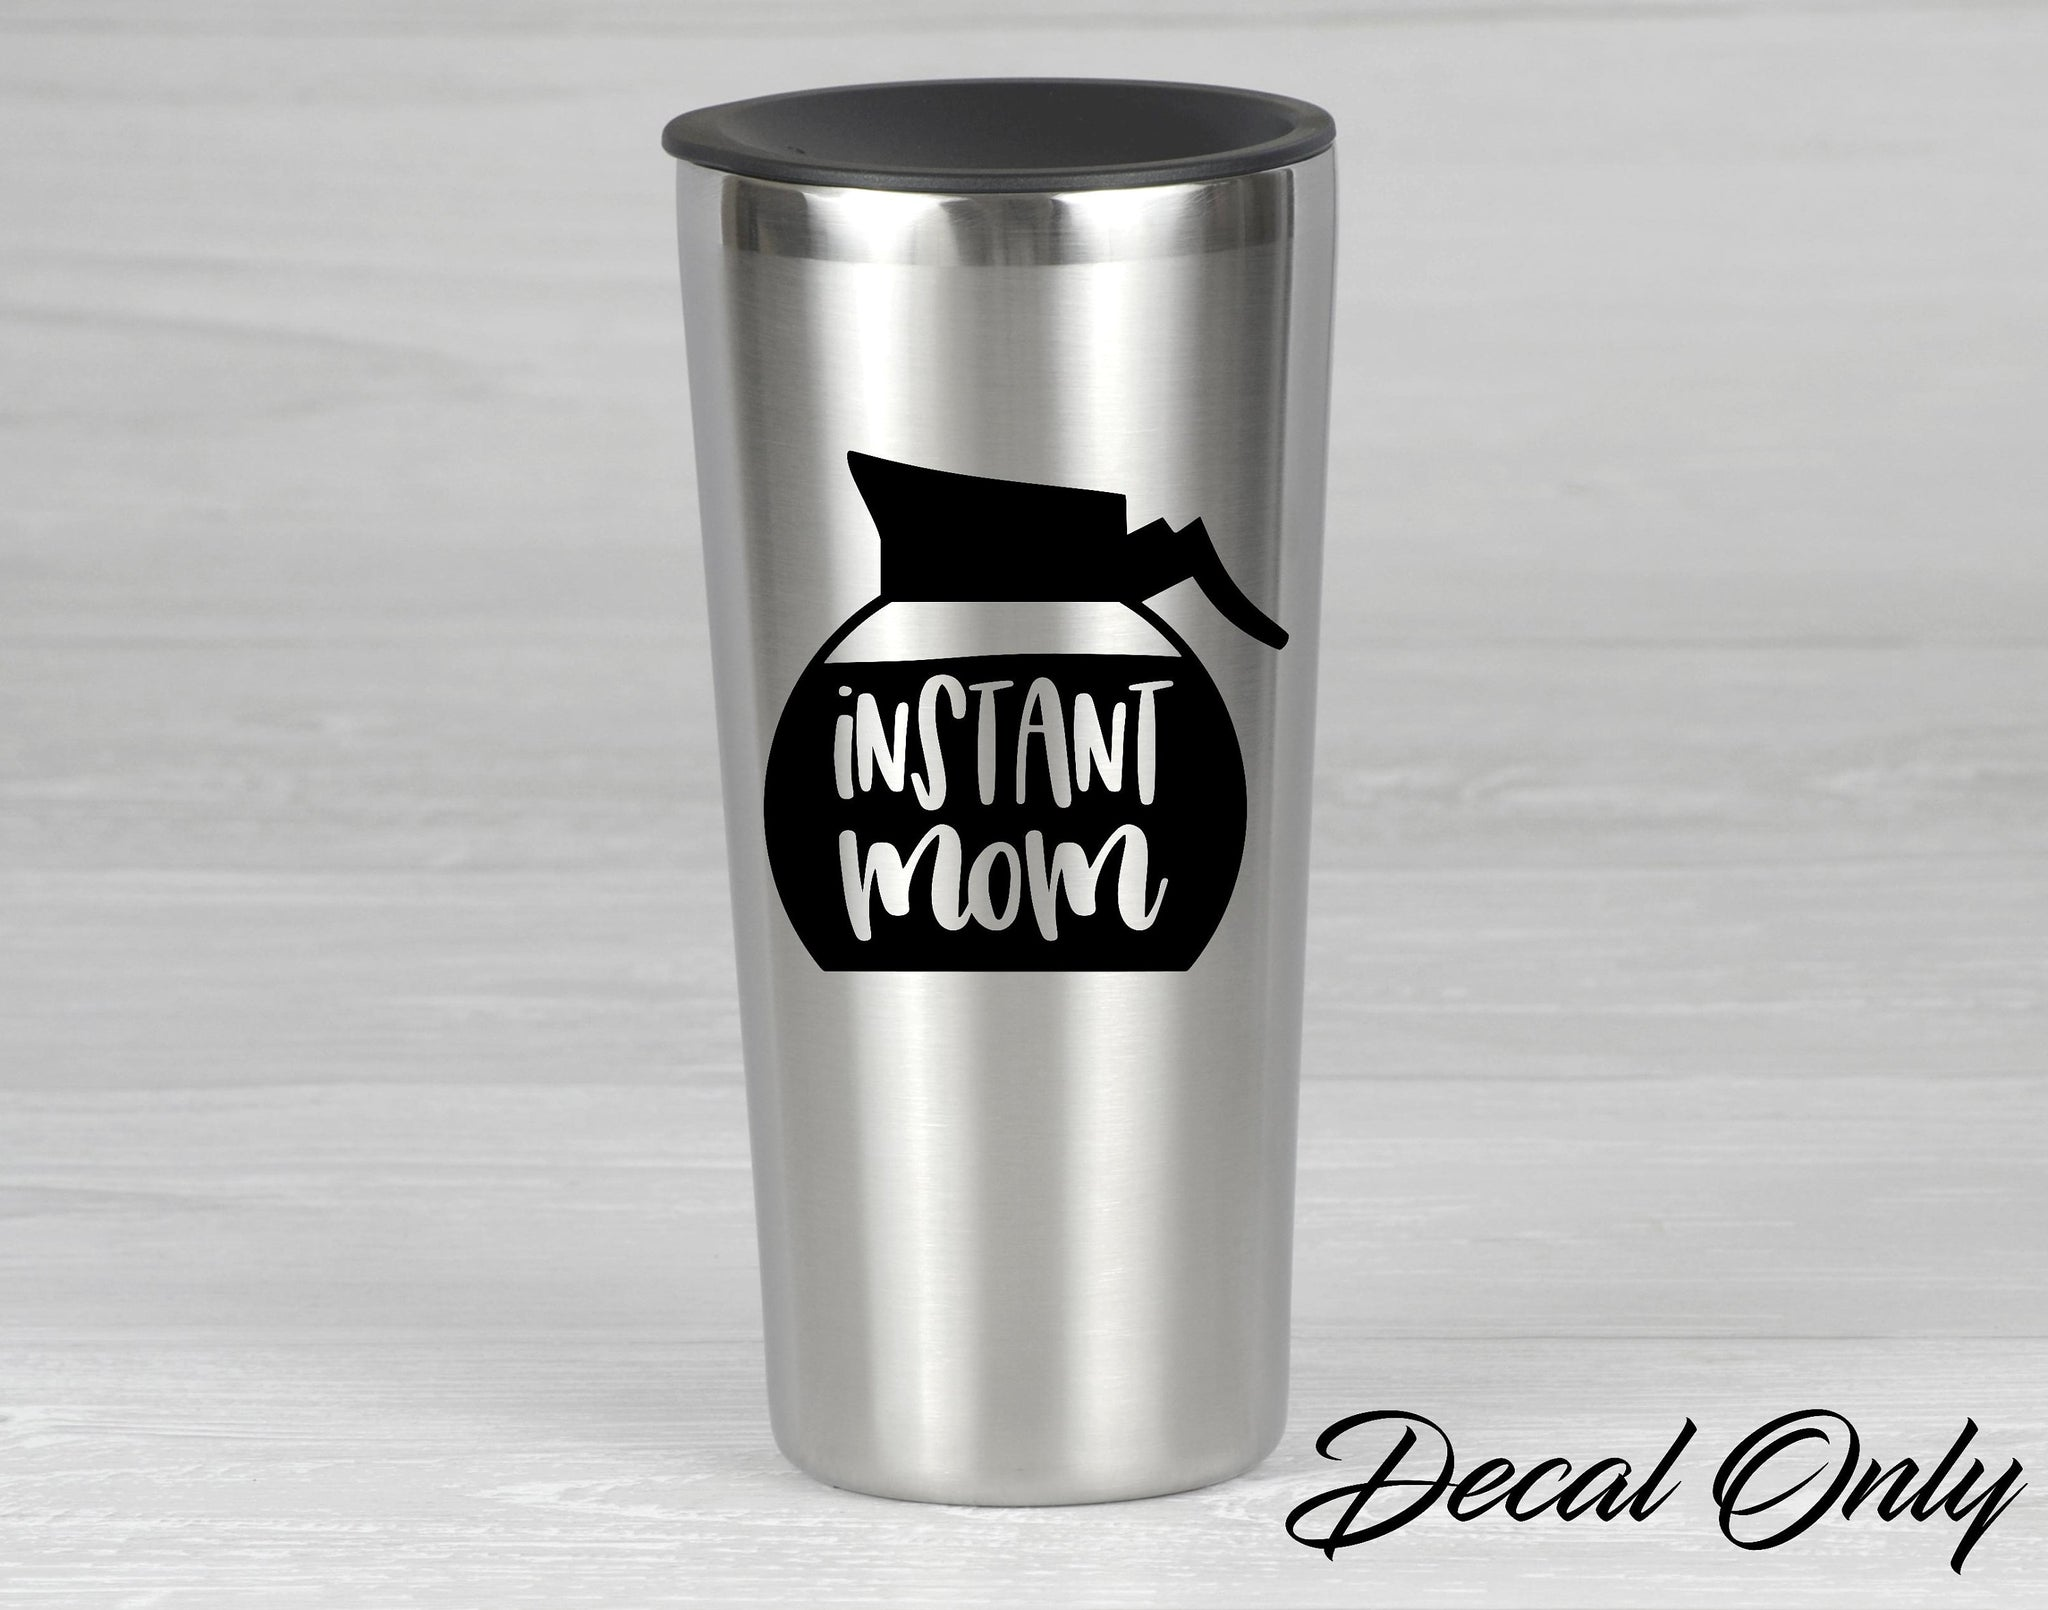 Instant Mom Coffee Pot Vinyl Decal Sticker Tumbler, Mug, Coffee Cup Decals